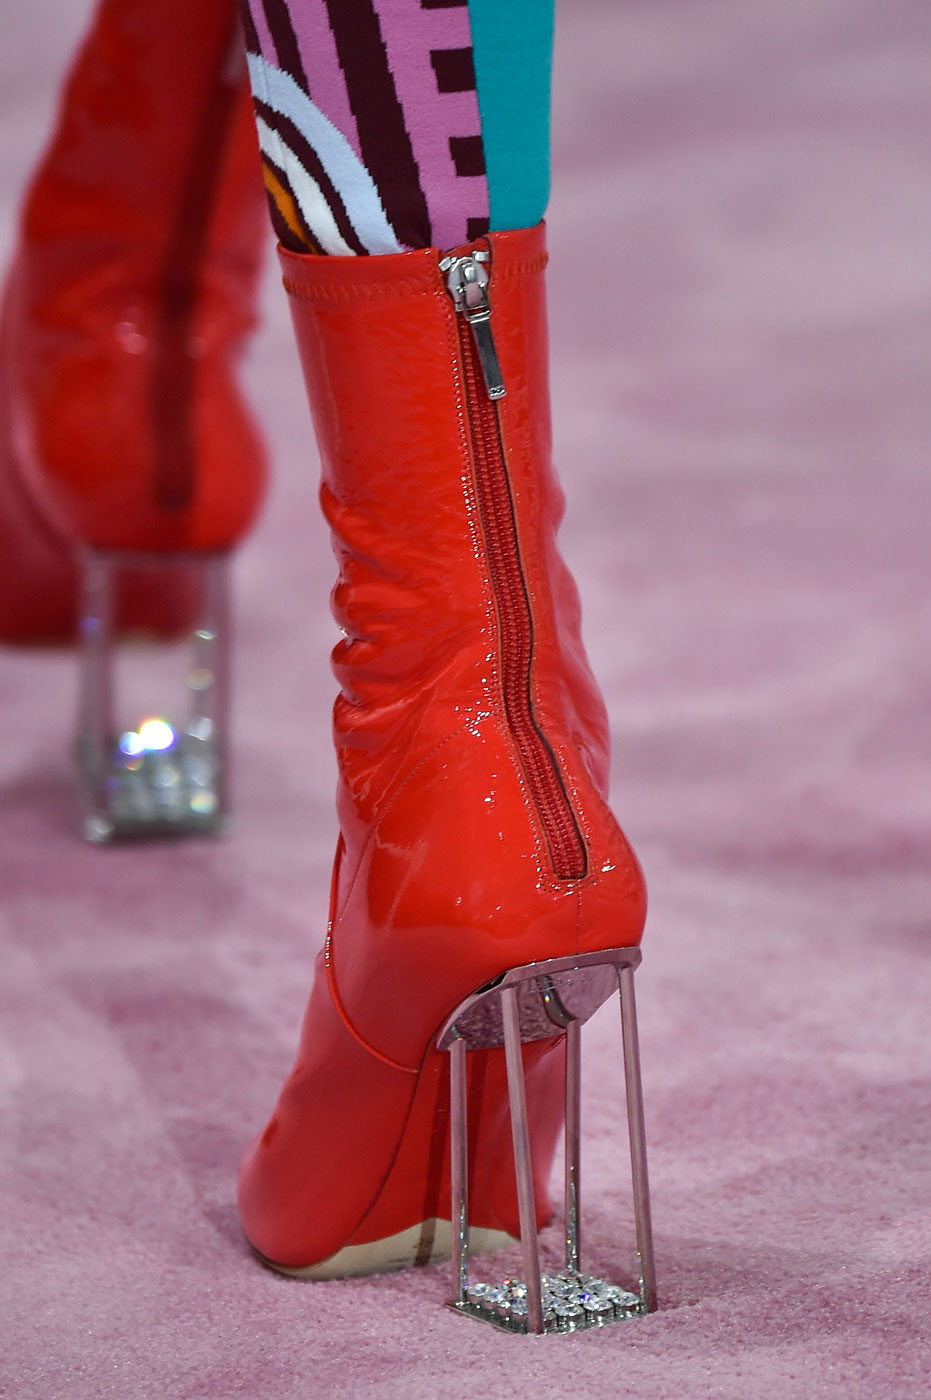 Christian-Dior-fashion-runway-show-close-ups-haute-couture-paris-spring-summer-2015-the-impression-014